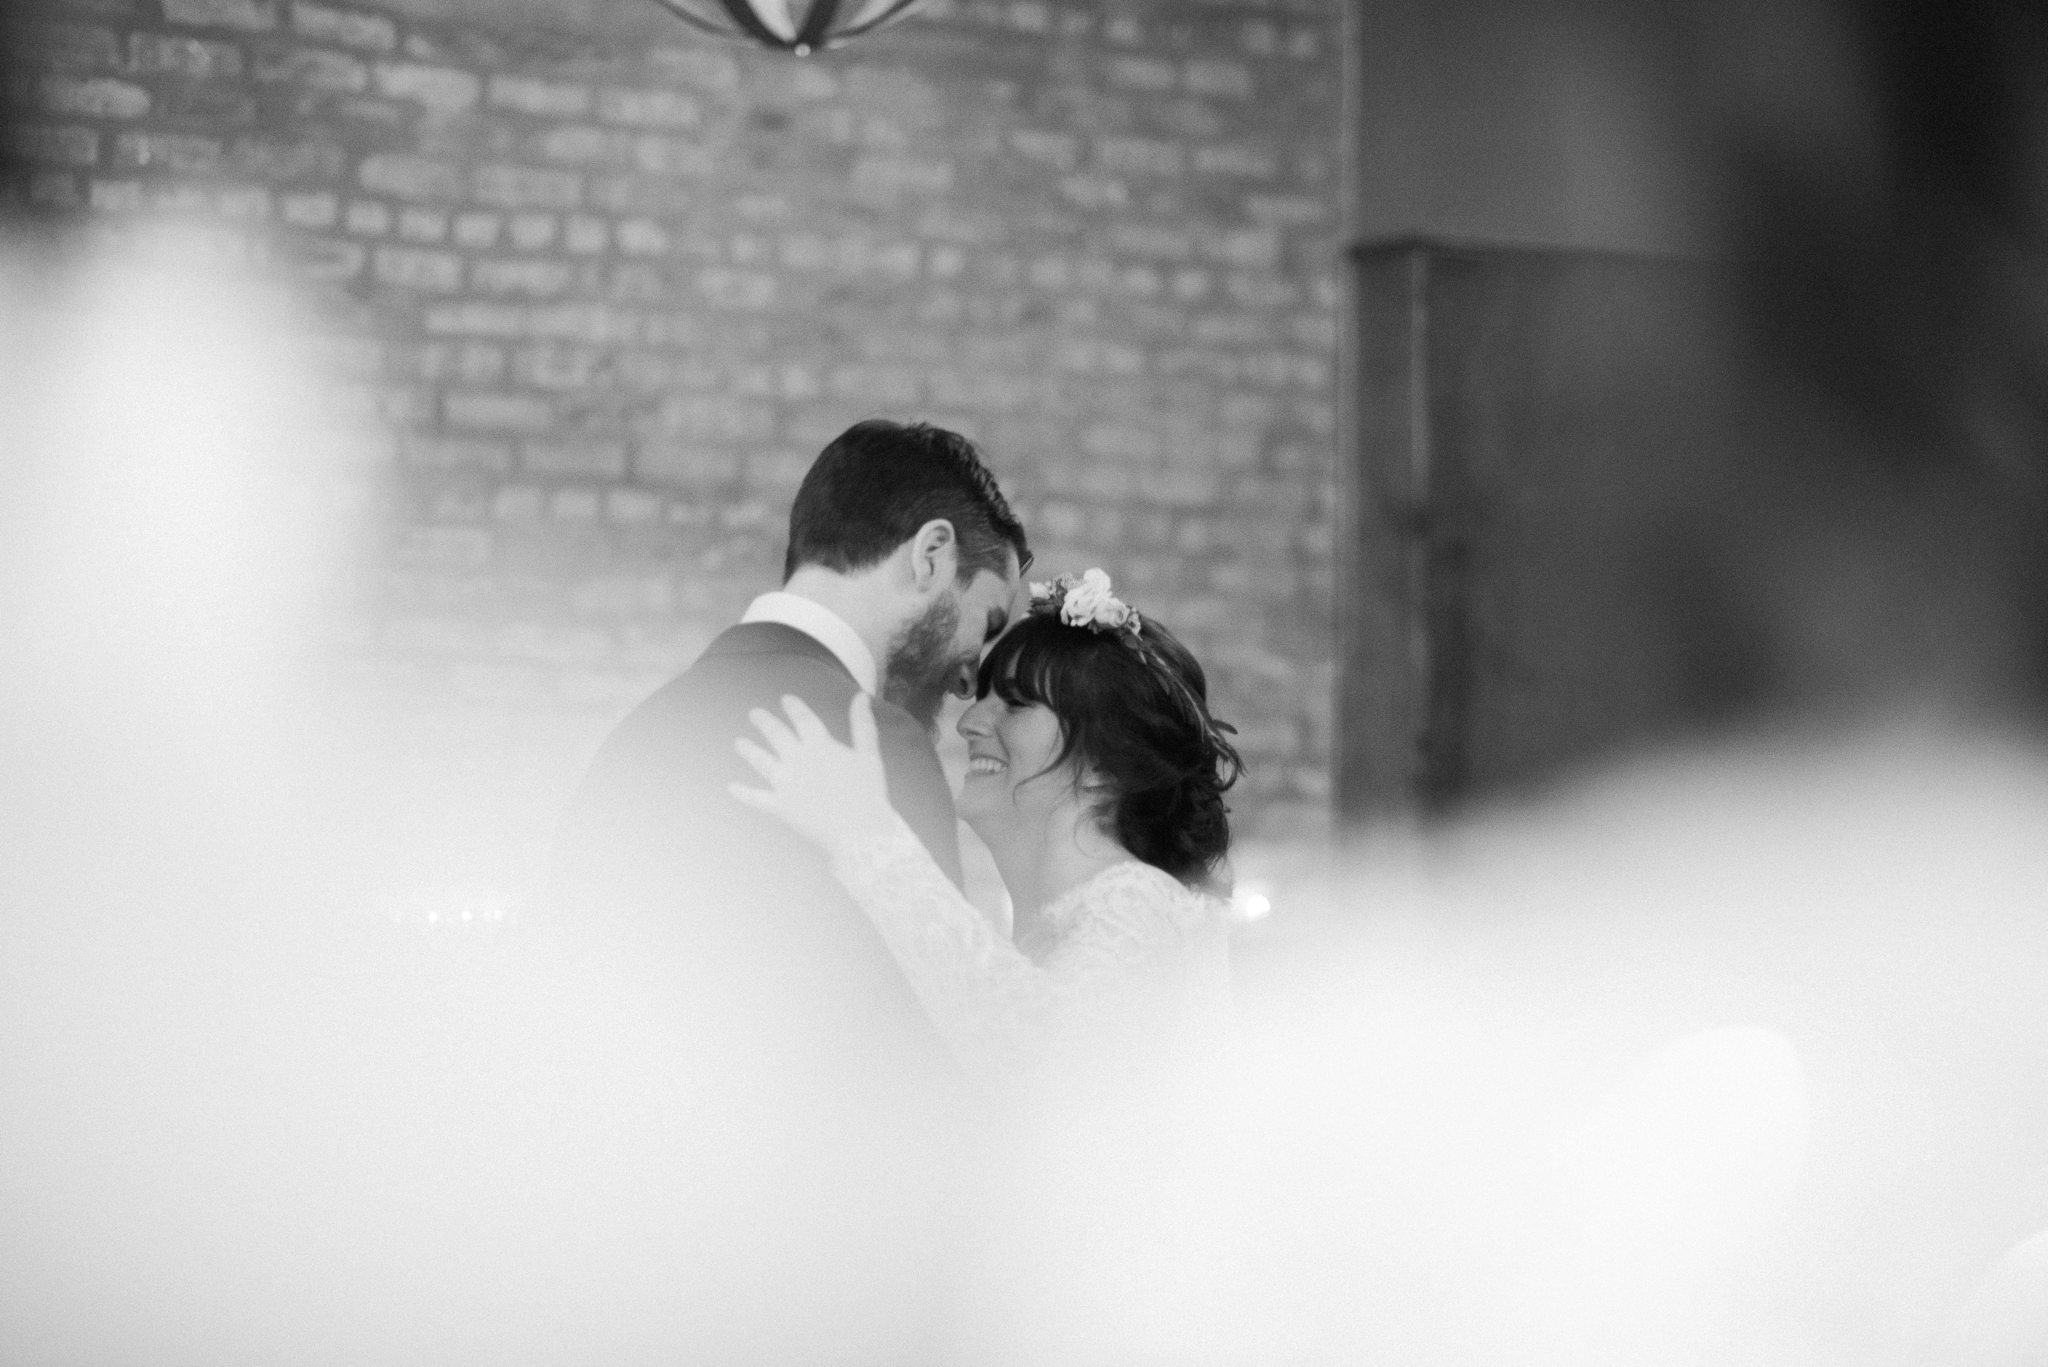 Revolution-Brewing-Wedding-Photographer-093.JPG